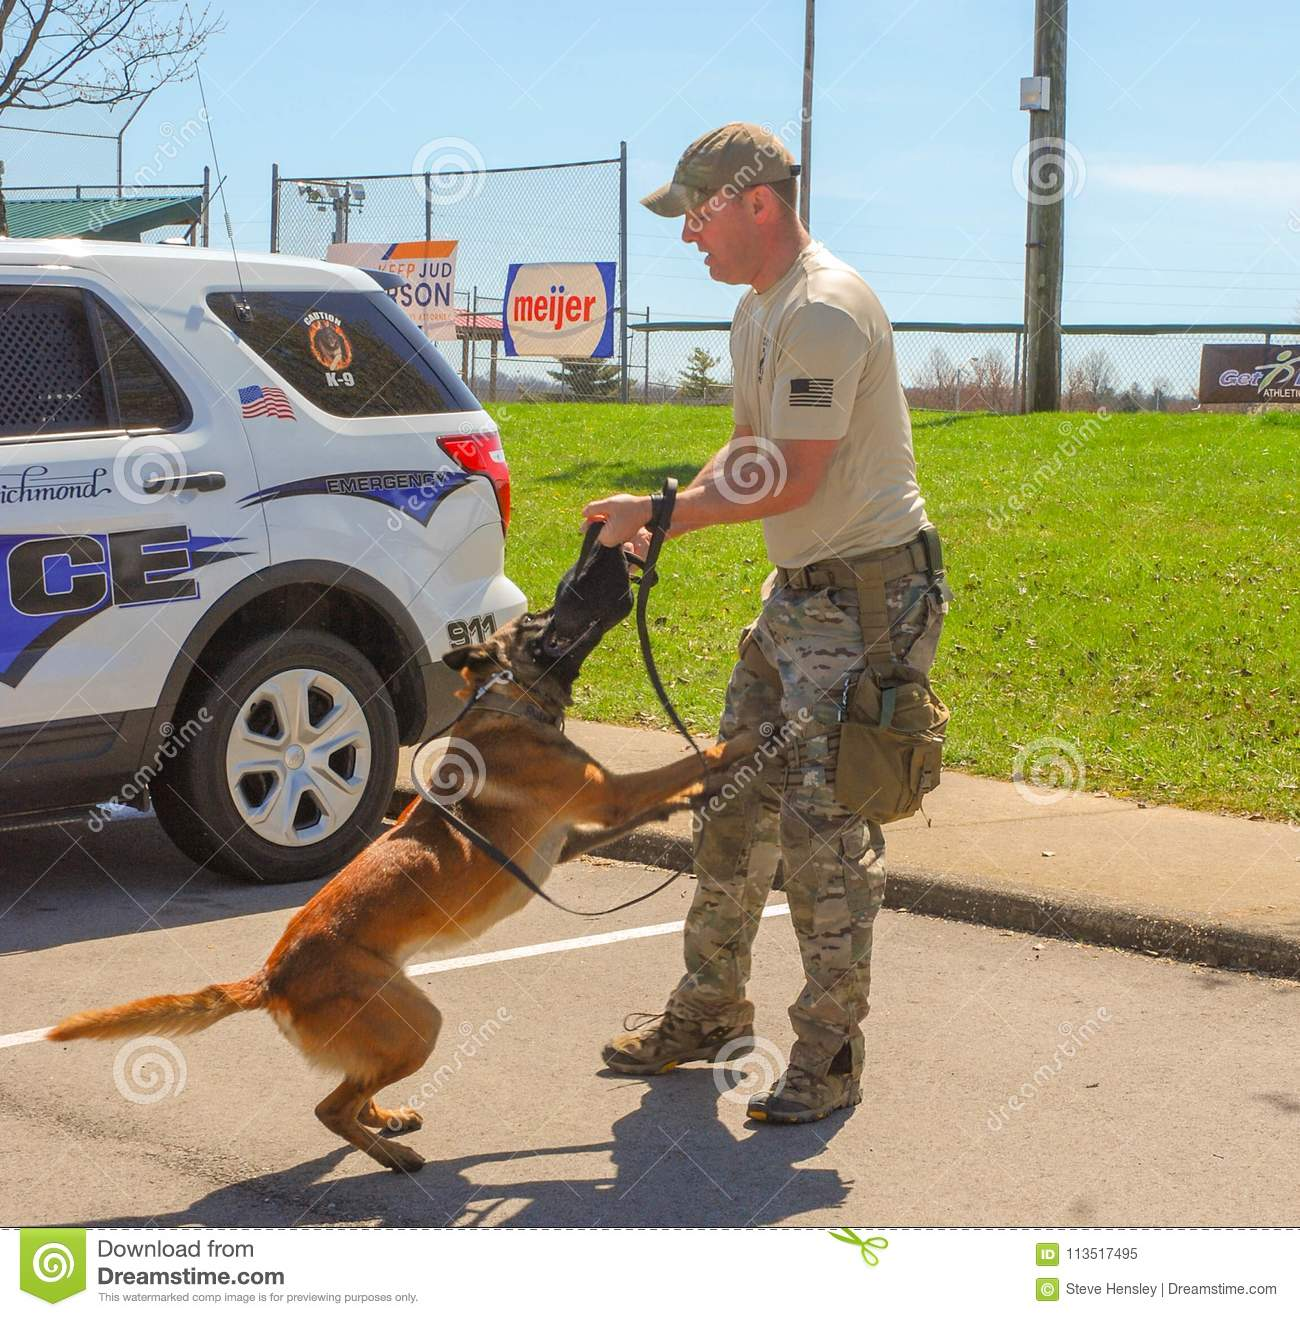 Richmond, KY US - March 31, 2018 - Easter Eggstravaganza A K9 Officer demonstrates canine techniques and training exercises